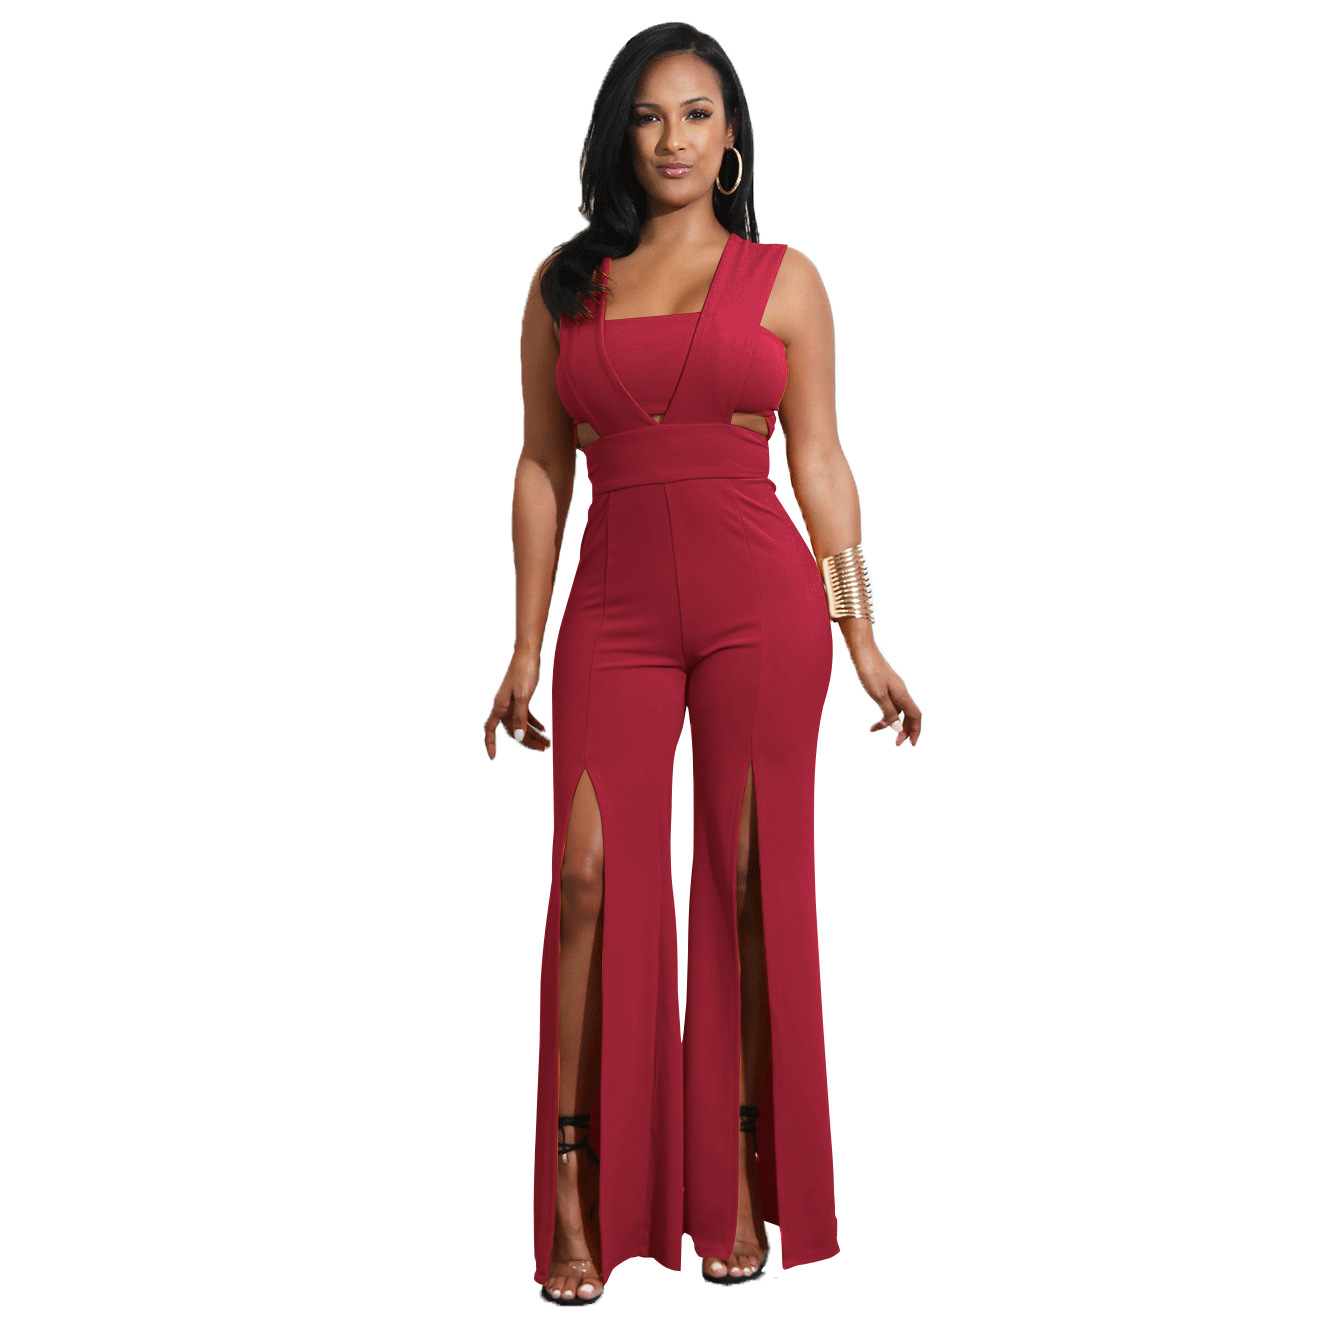 Plus Size Jumpsuits And Rompers For Women Promotion Time-limited Polyester Casual Straight 2018 New Sexy Women Jumpsuit